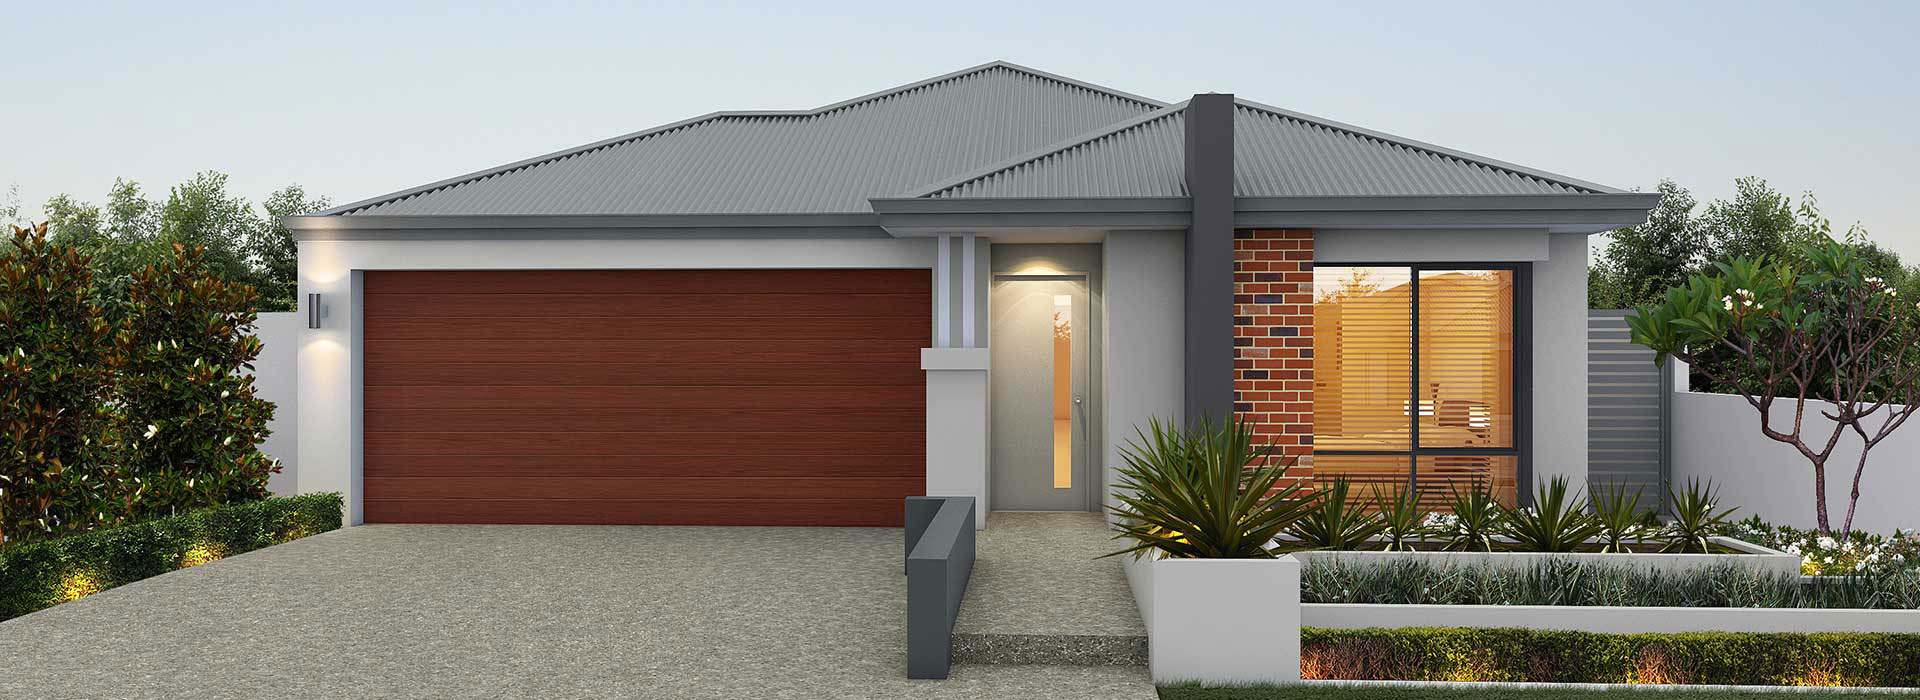 """House frontage of single storey home design """"My Oxford"""""""